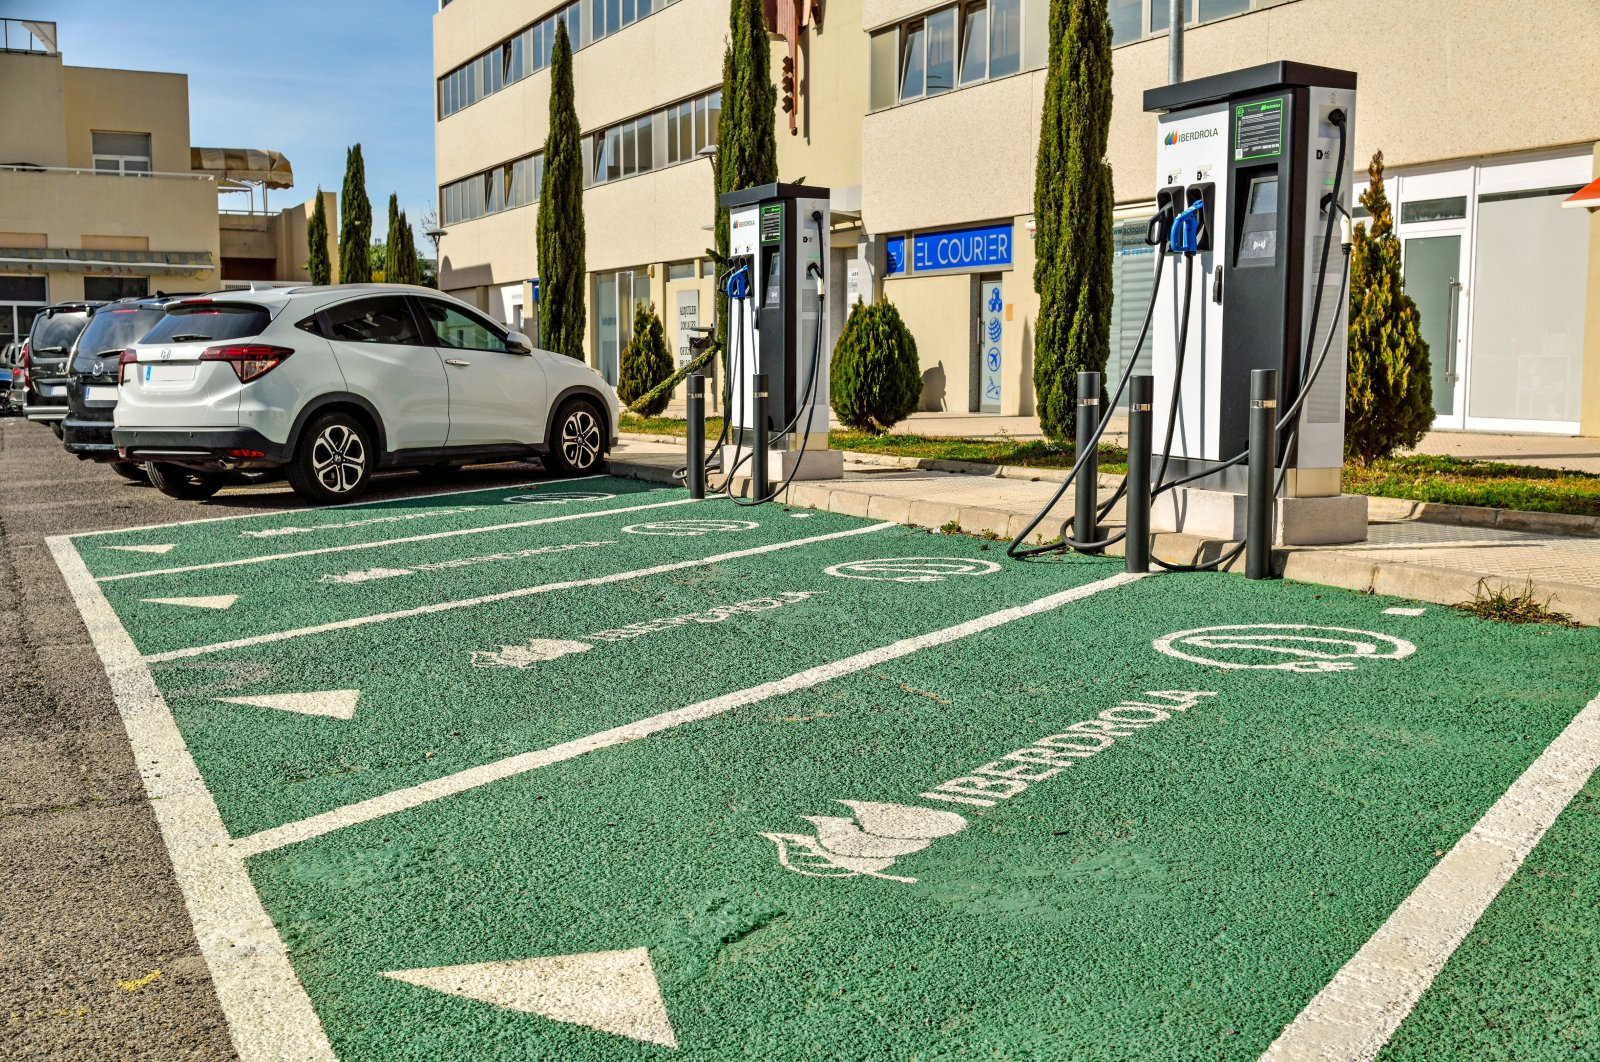 Electric car charging stations in Paterna, Valencia, Spain, Jan. 26, 2021. (Shutterstock Photo)